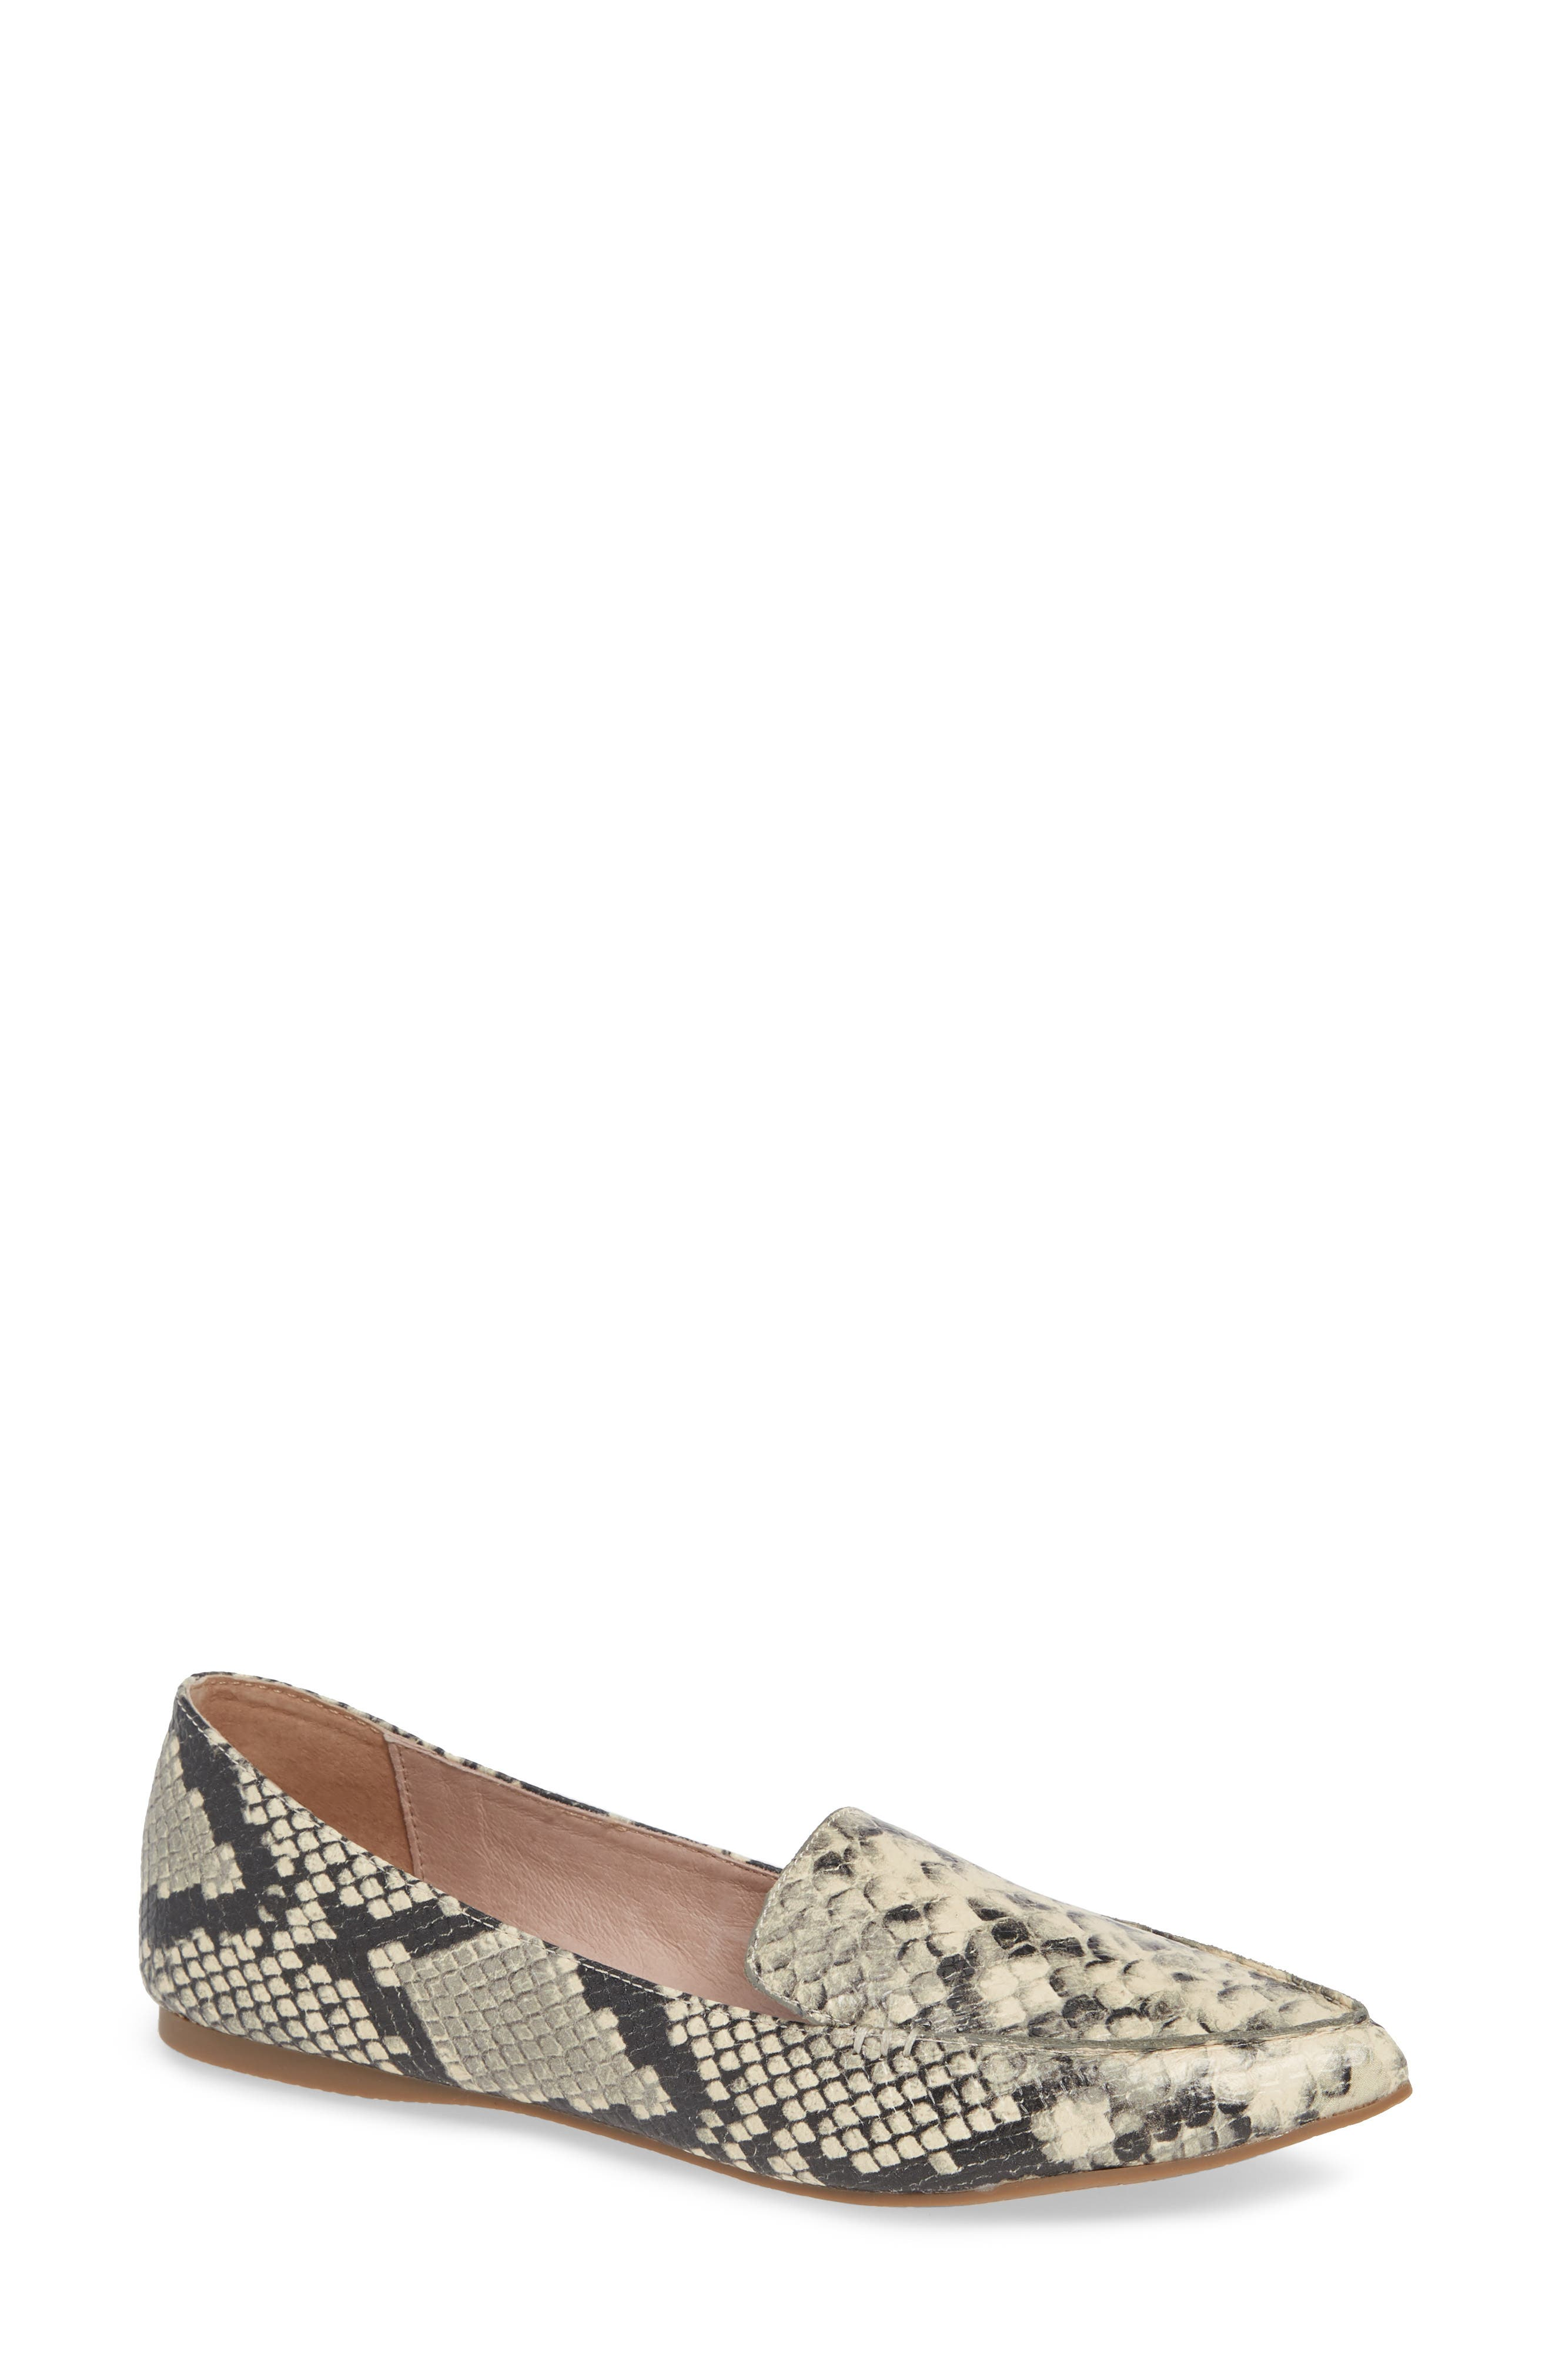 Feather Loafer Flat,                         Main,                         color, SNAKE PRINT LEATHER